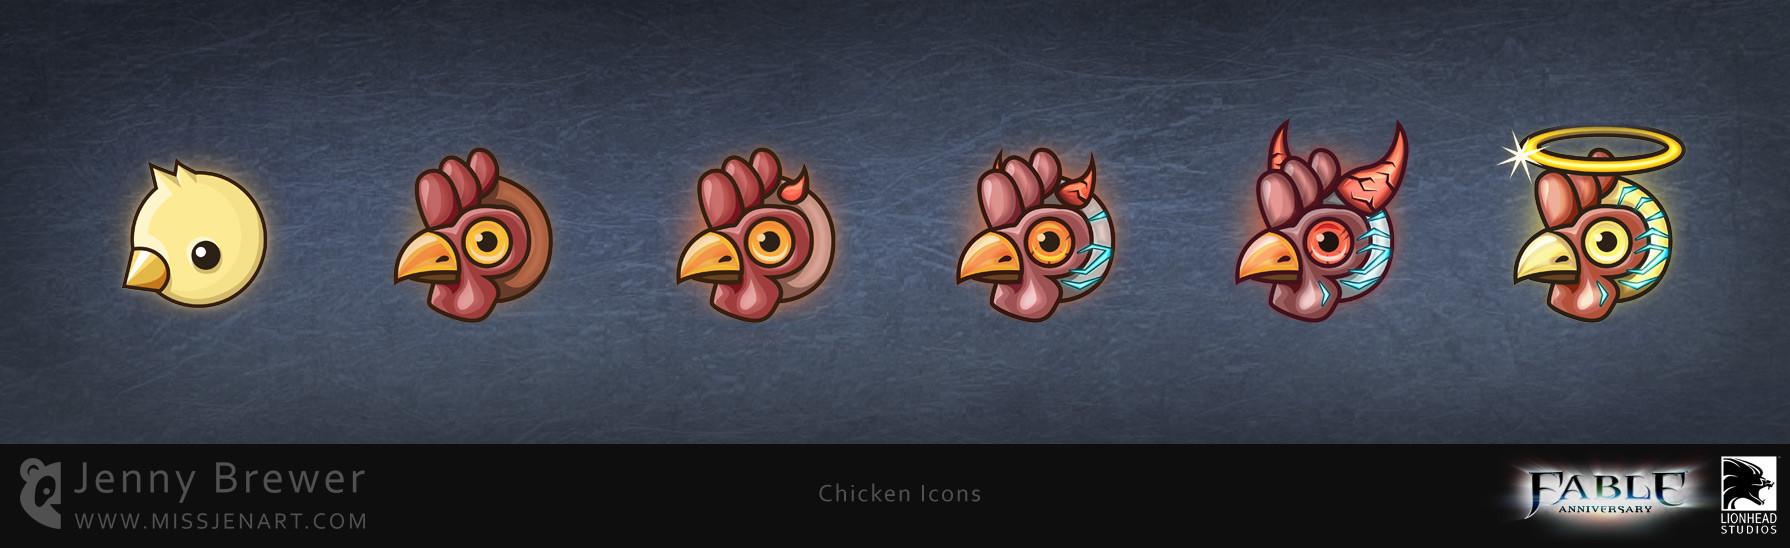 Jenny brewer fableanniversaryicons chickens